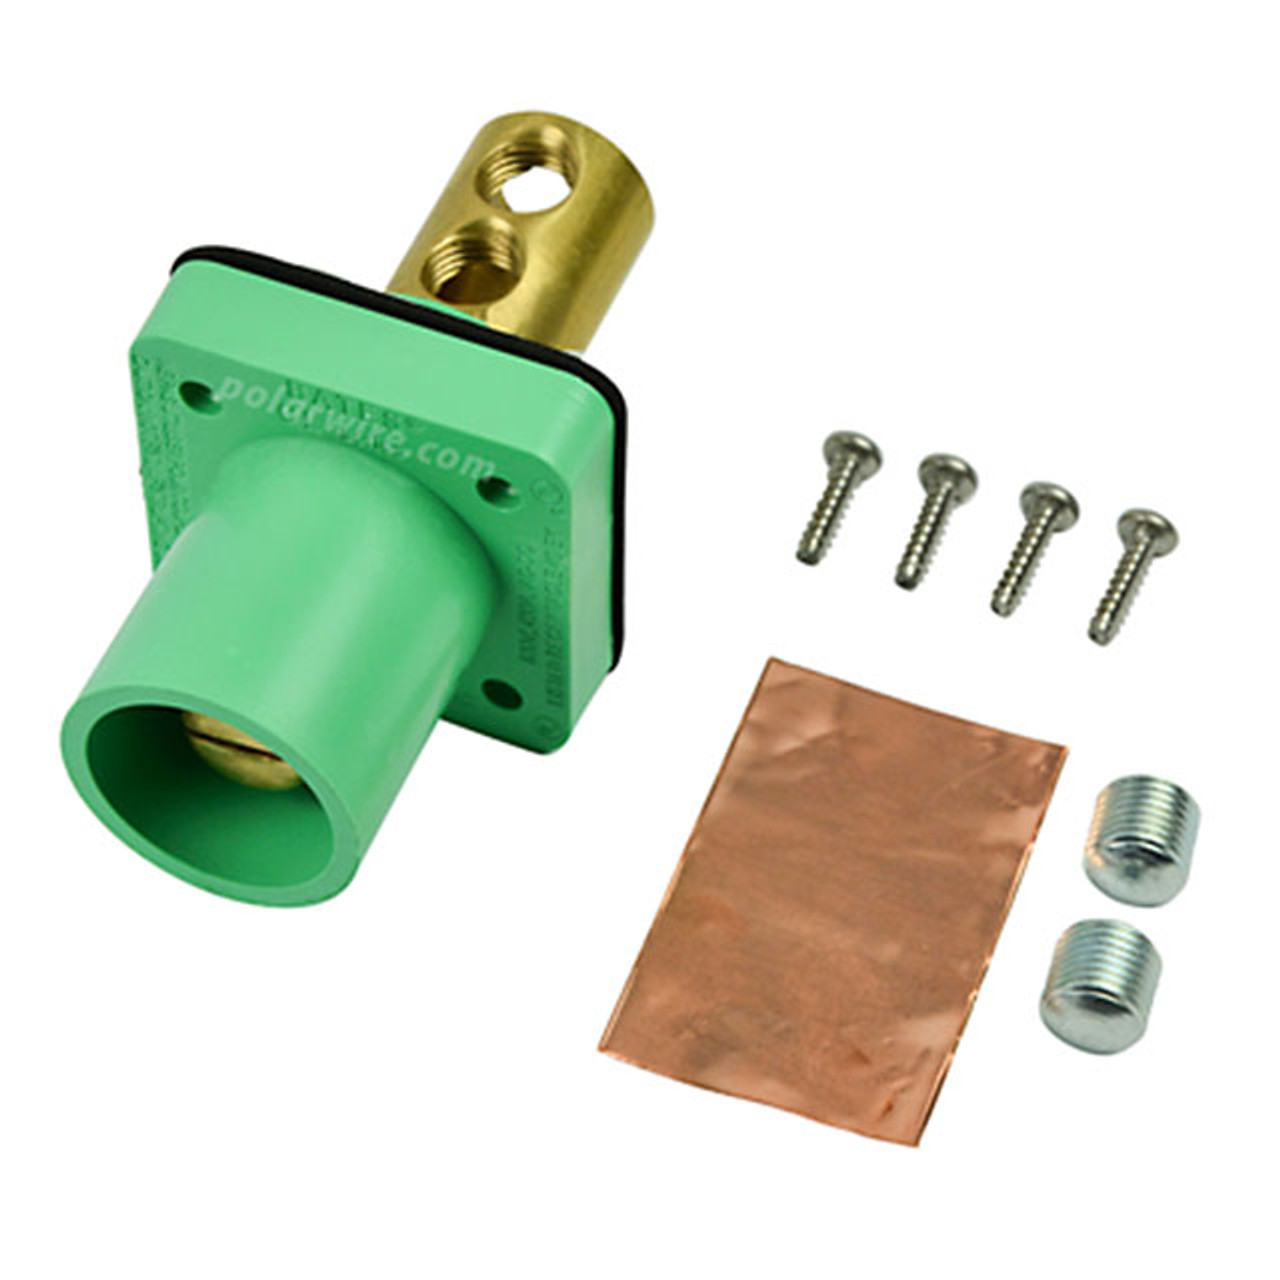 Marinco green 400A CL 16 Series male single pin panel mount cam lock connector with set screw for 2/0-4/0 AWG cable